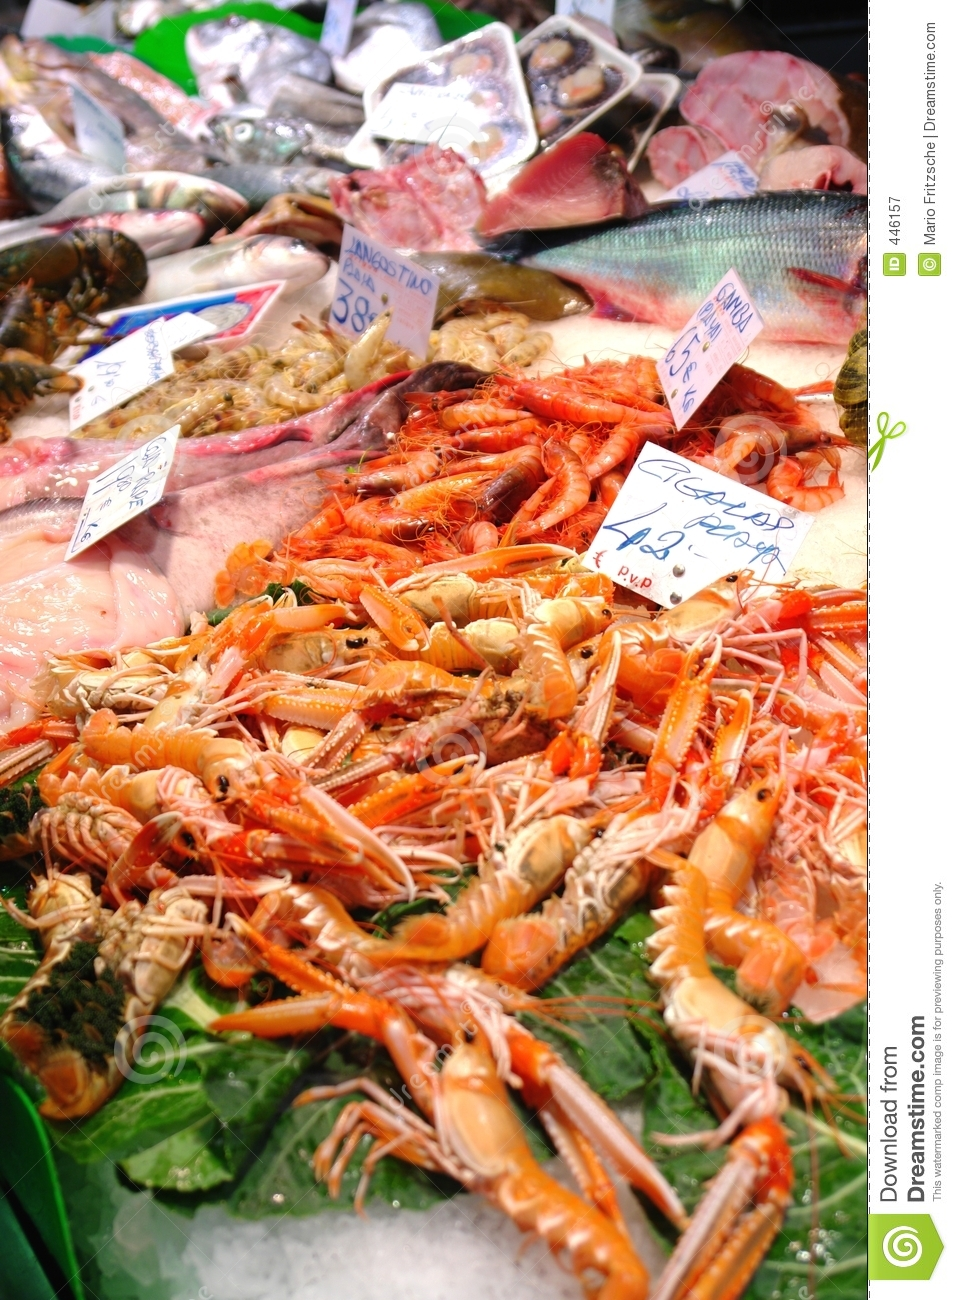 Seafood Market Royalty Free Stock Photography - Image: 446157